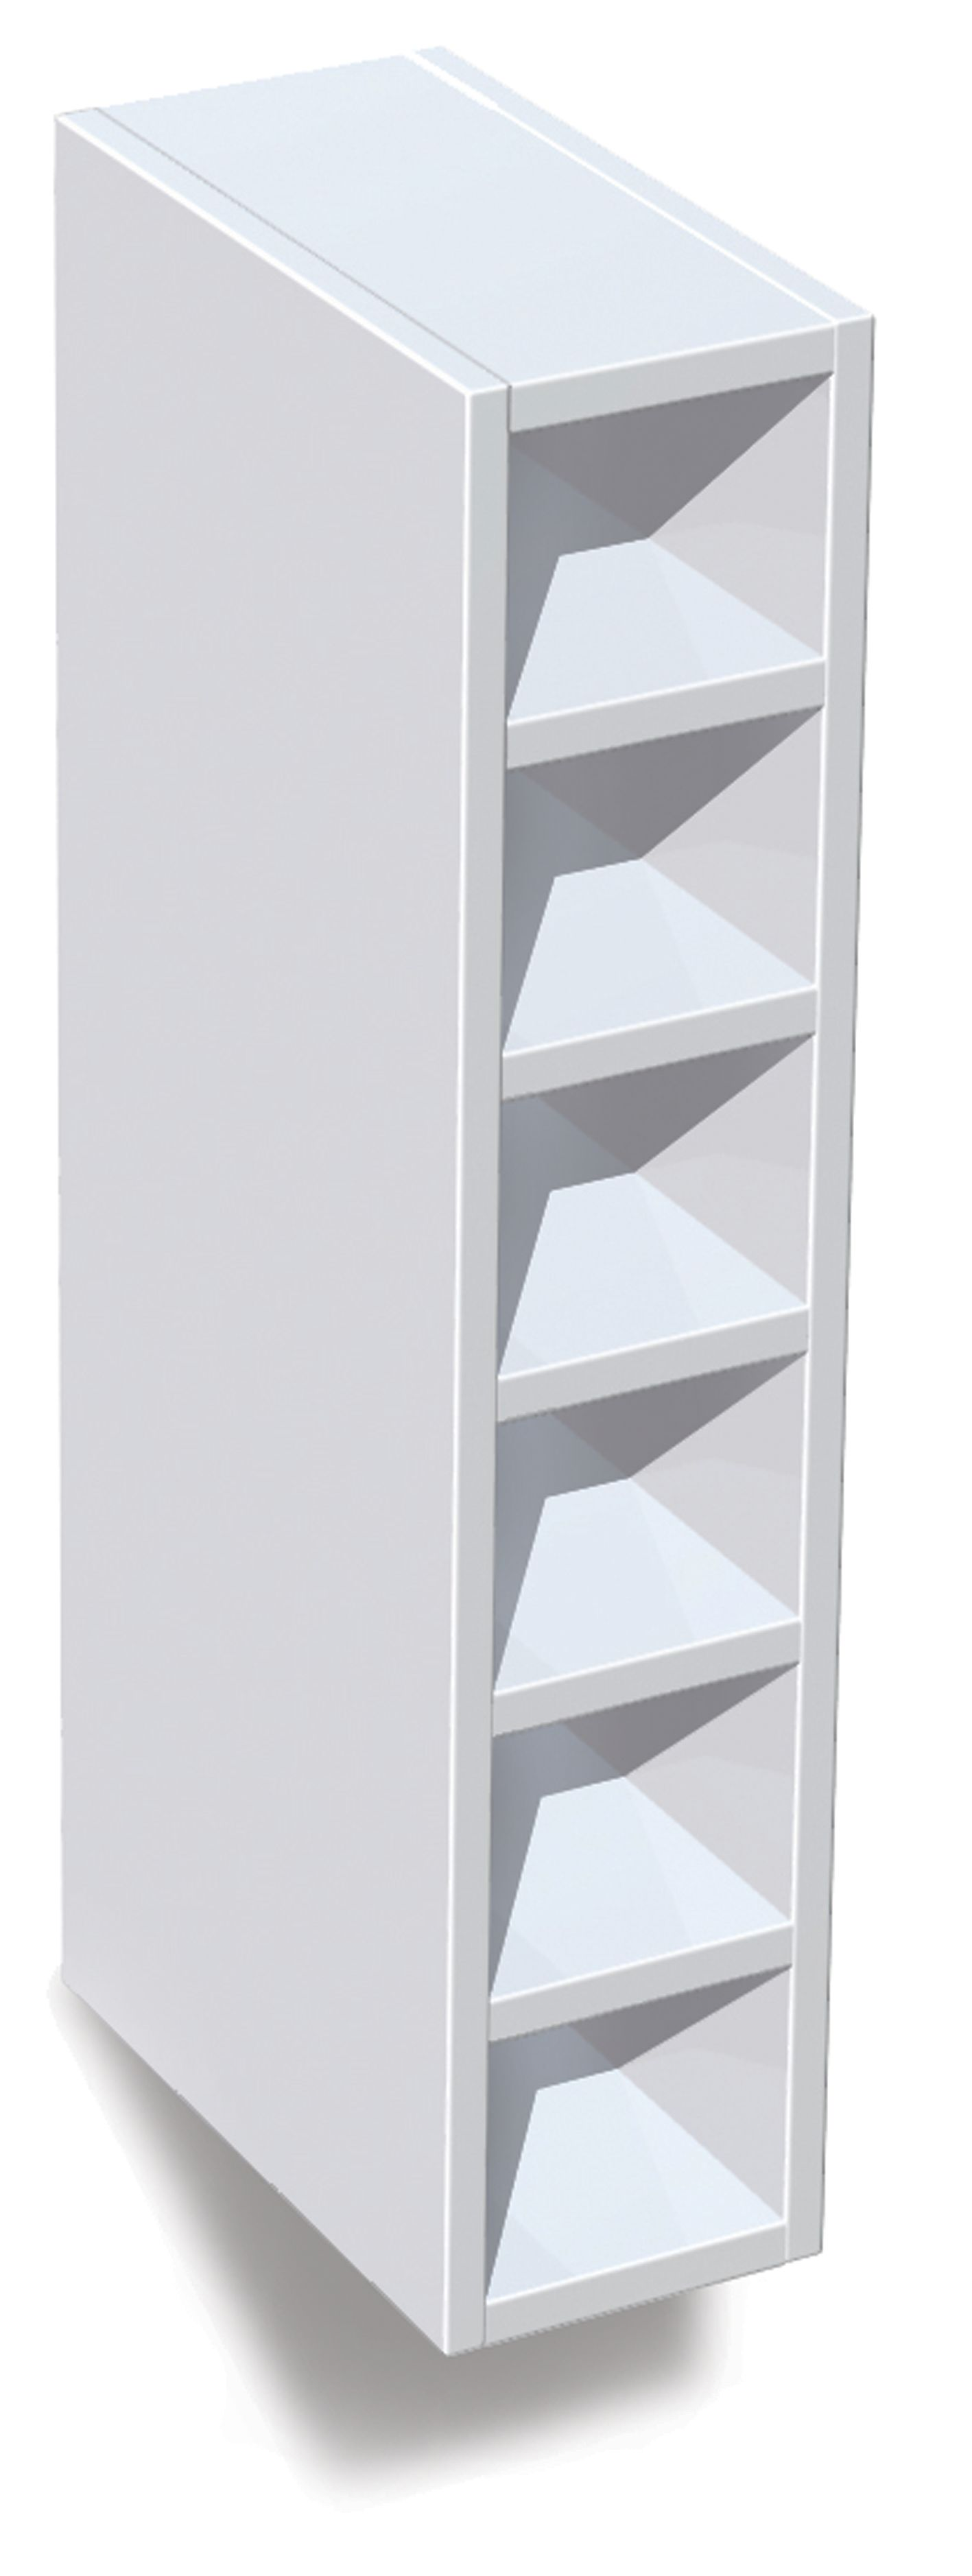 It kitchens white wine rack cabinet w 150mm departments for Building a wine rack in a cabinet